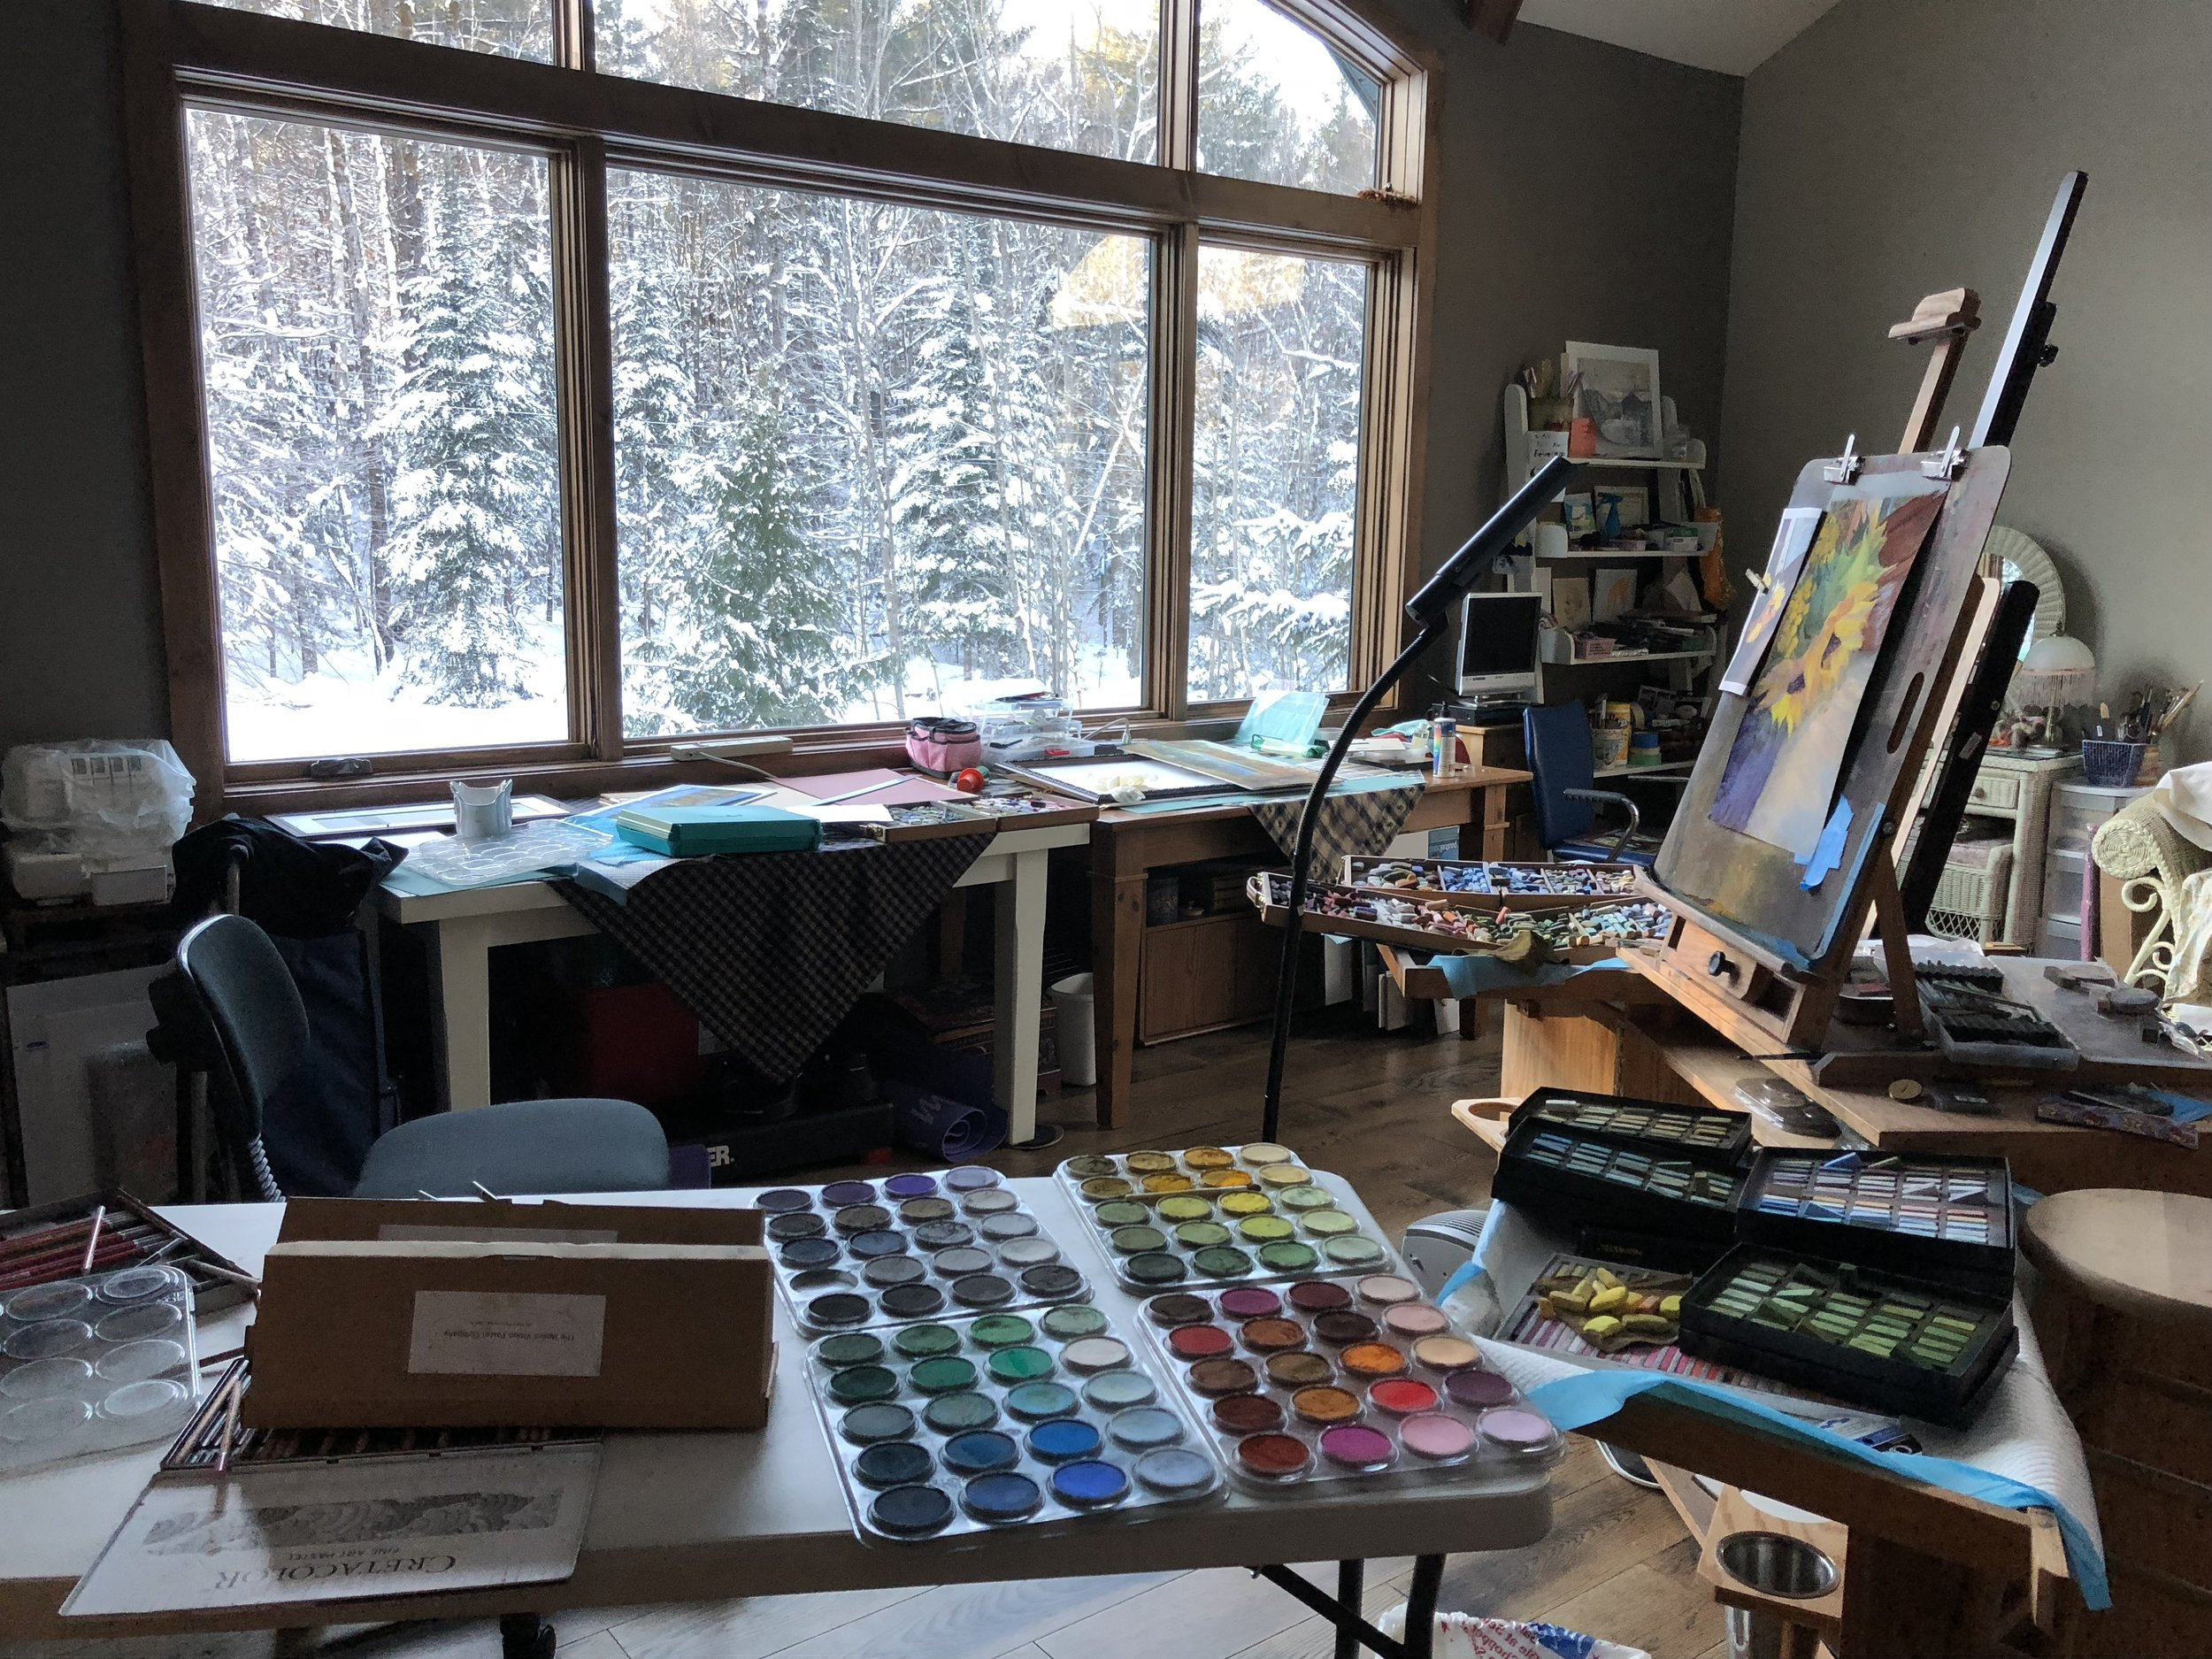 Working in the studio on a snowy January day.